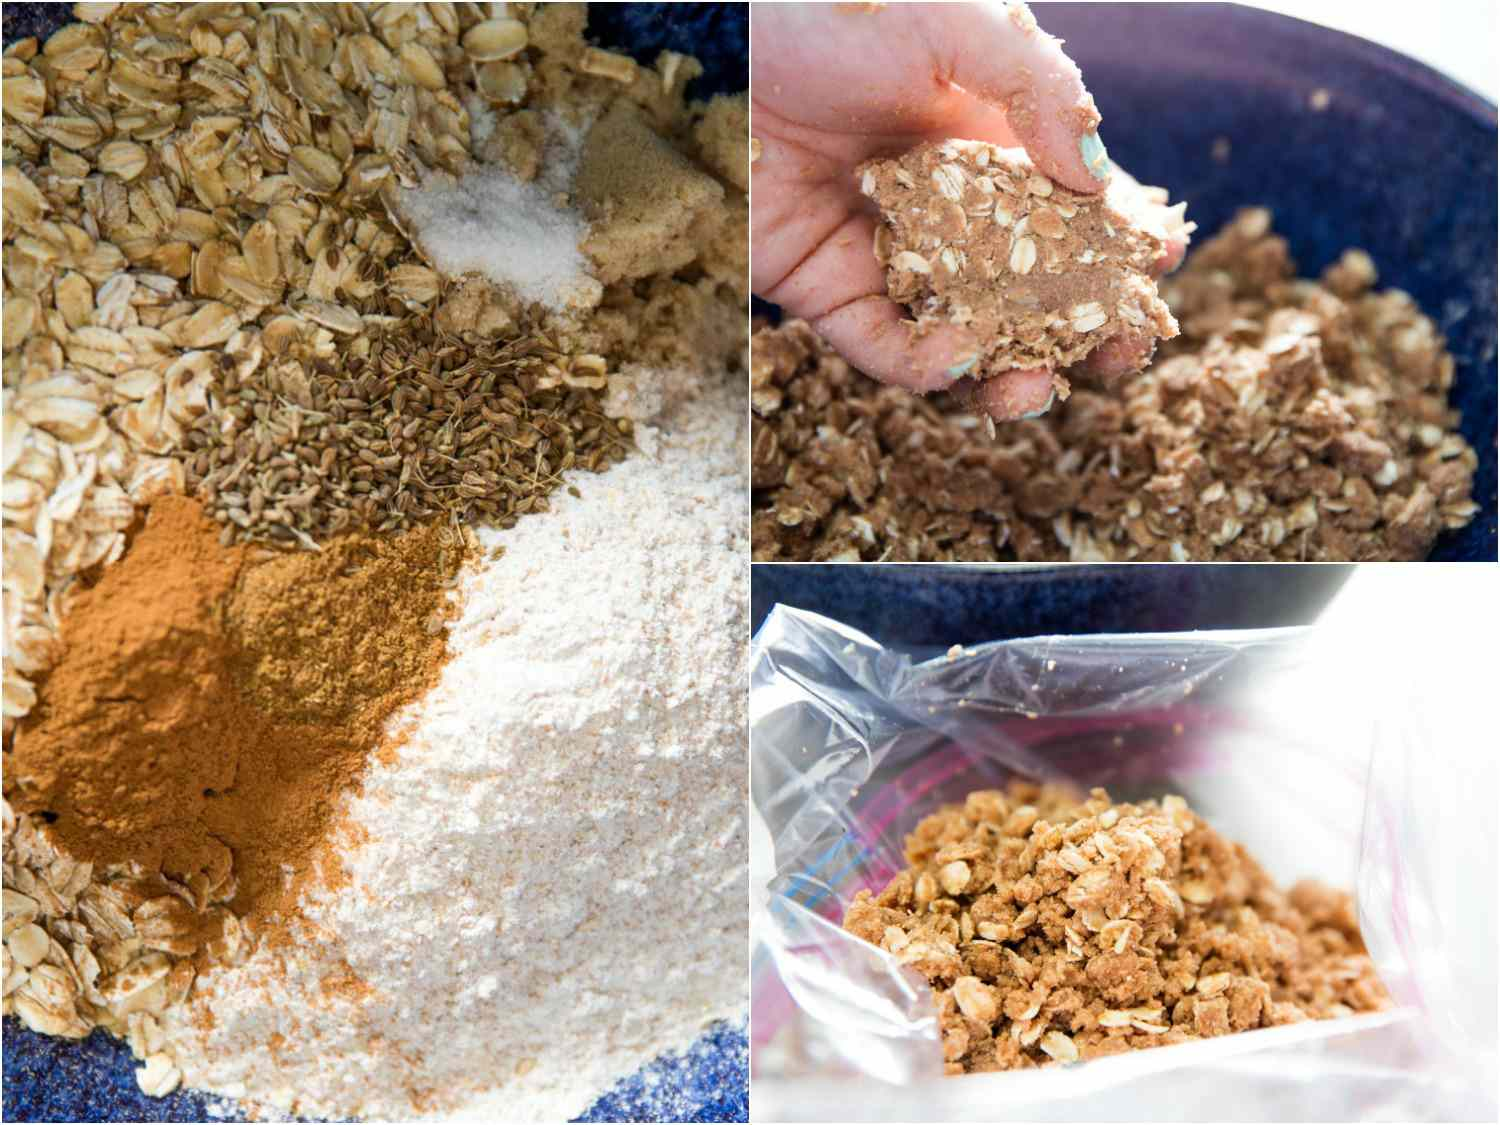 Collage of making streusel topping for rhubarb crisp: oats, sugar, flour, and spices in mixing bowl; hand with a clump of streusel; streusel in plastic bag